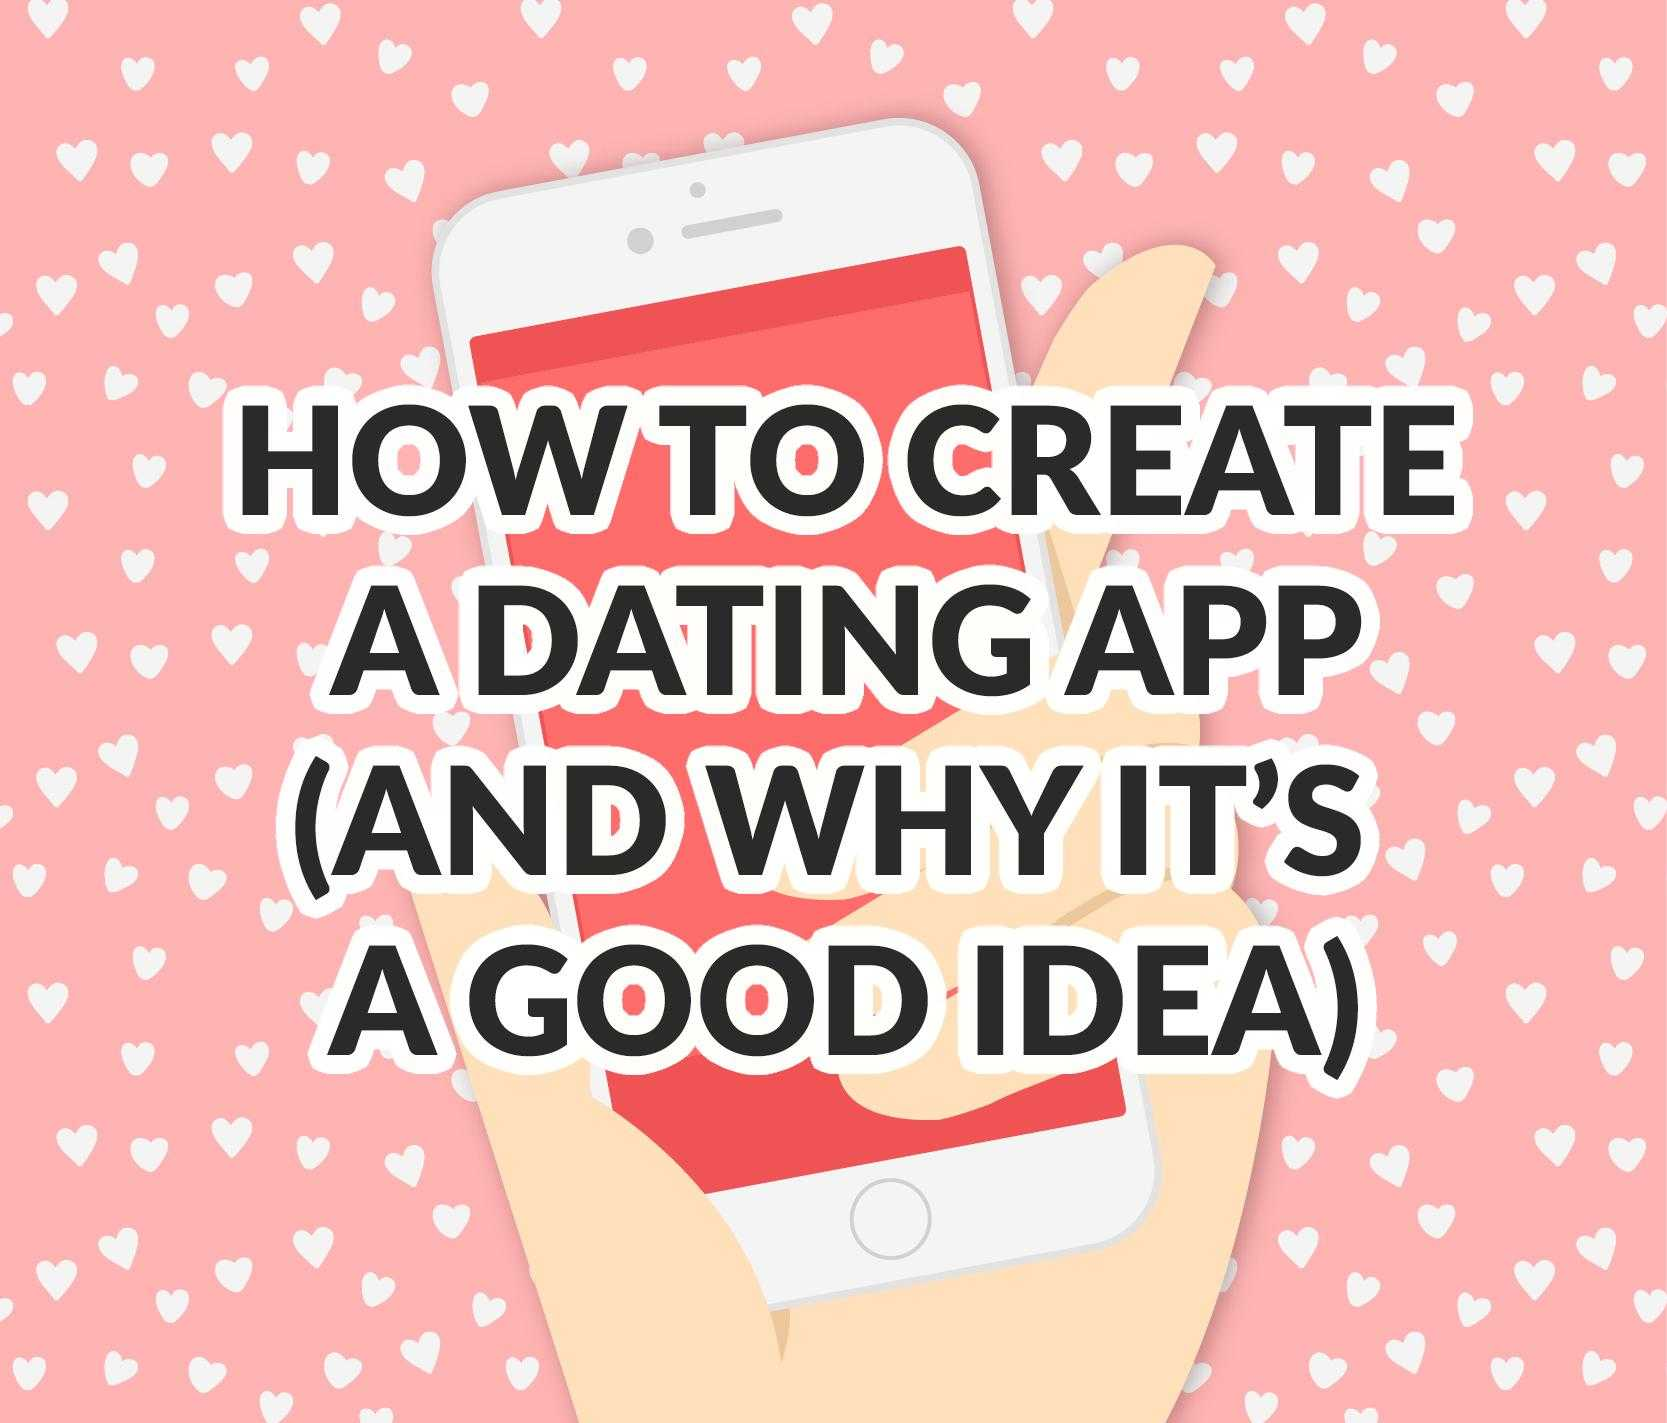 How to start convorsations on dating apps